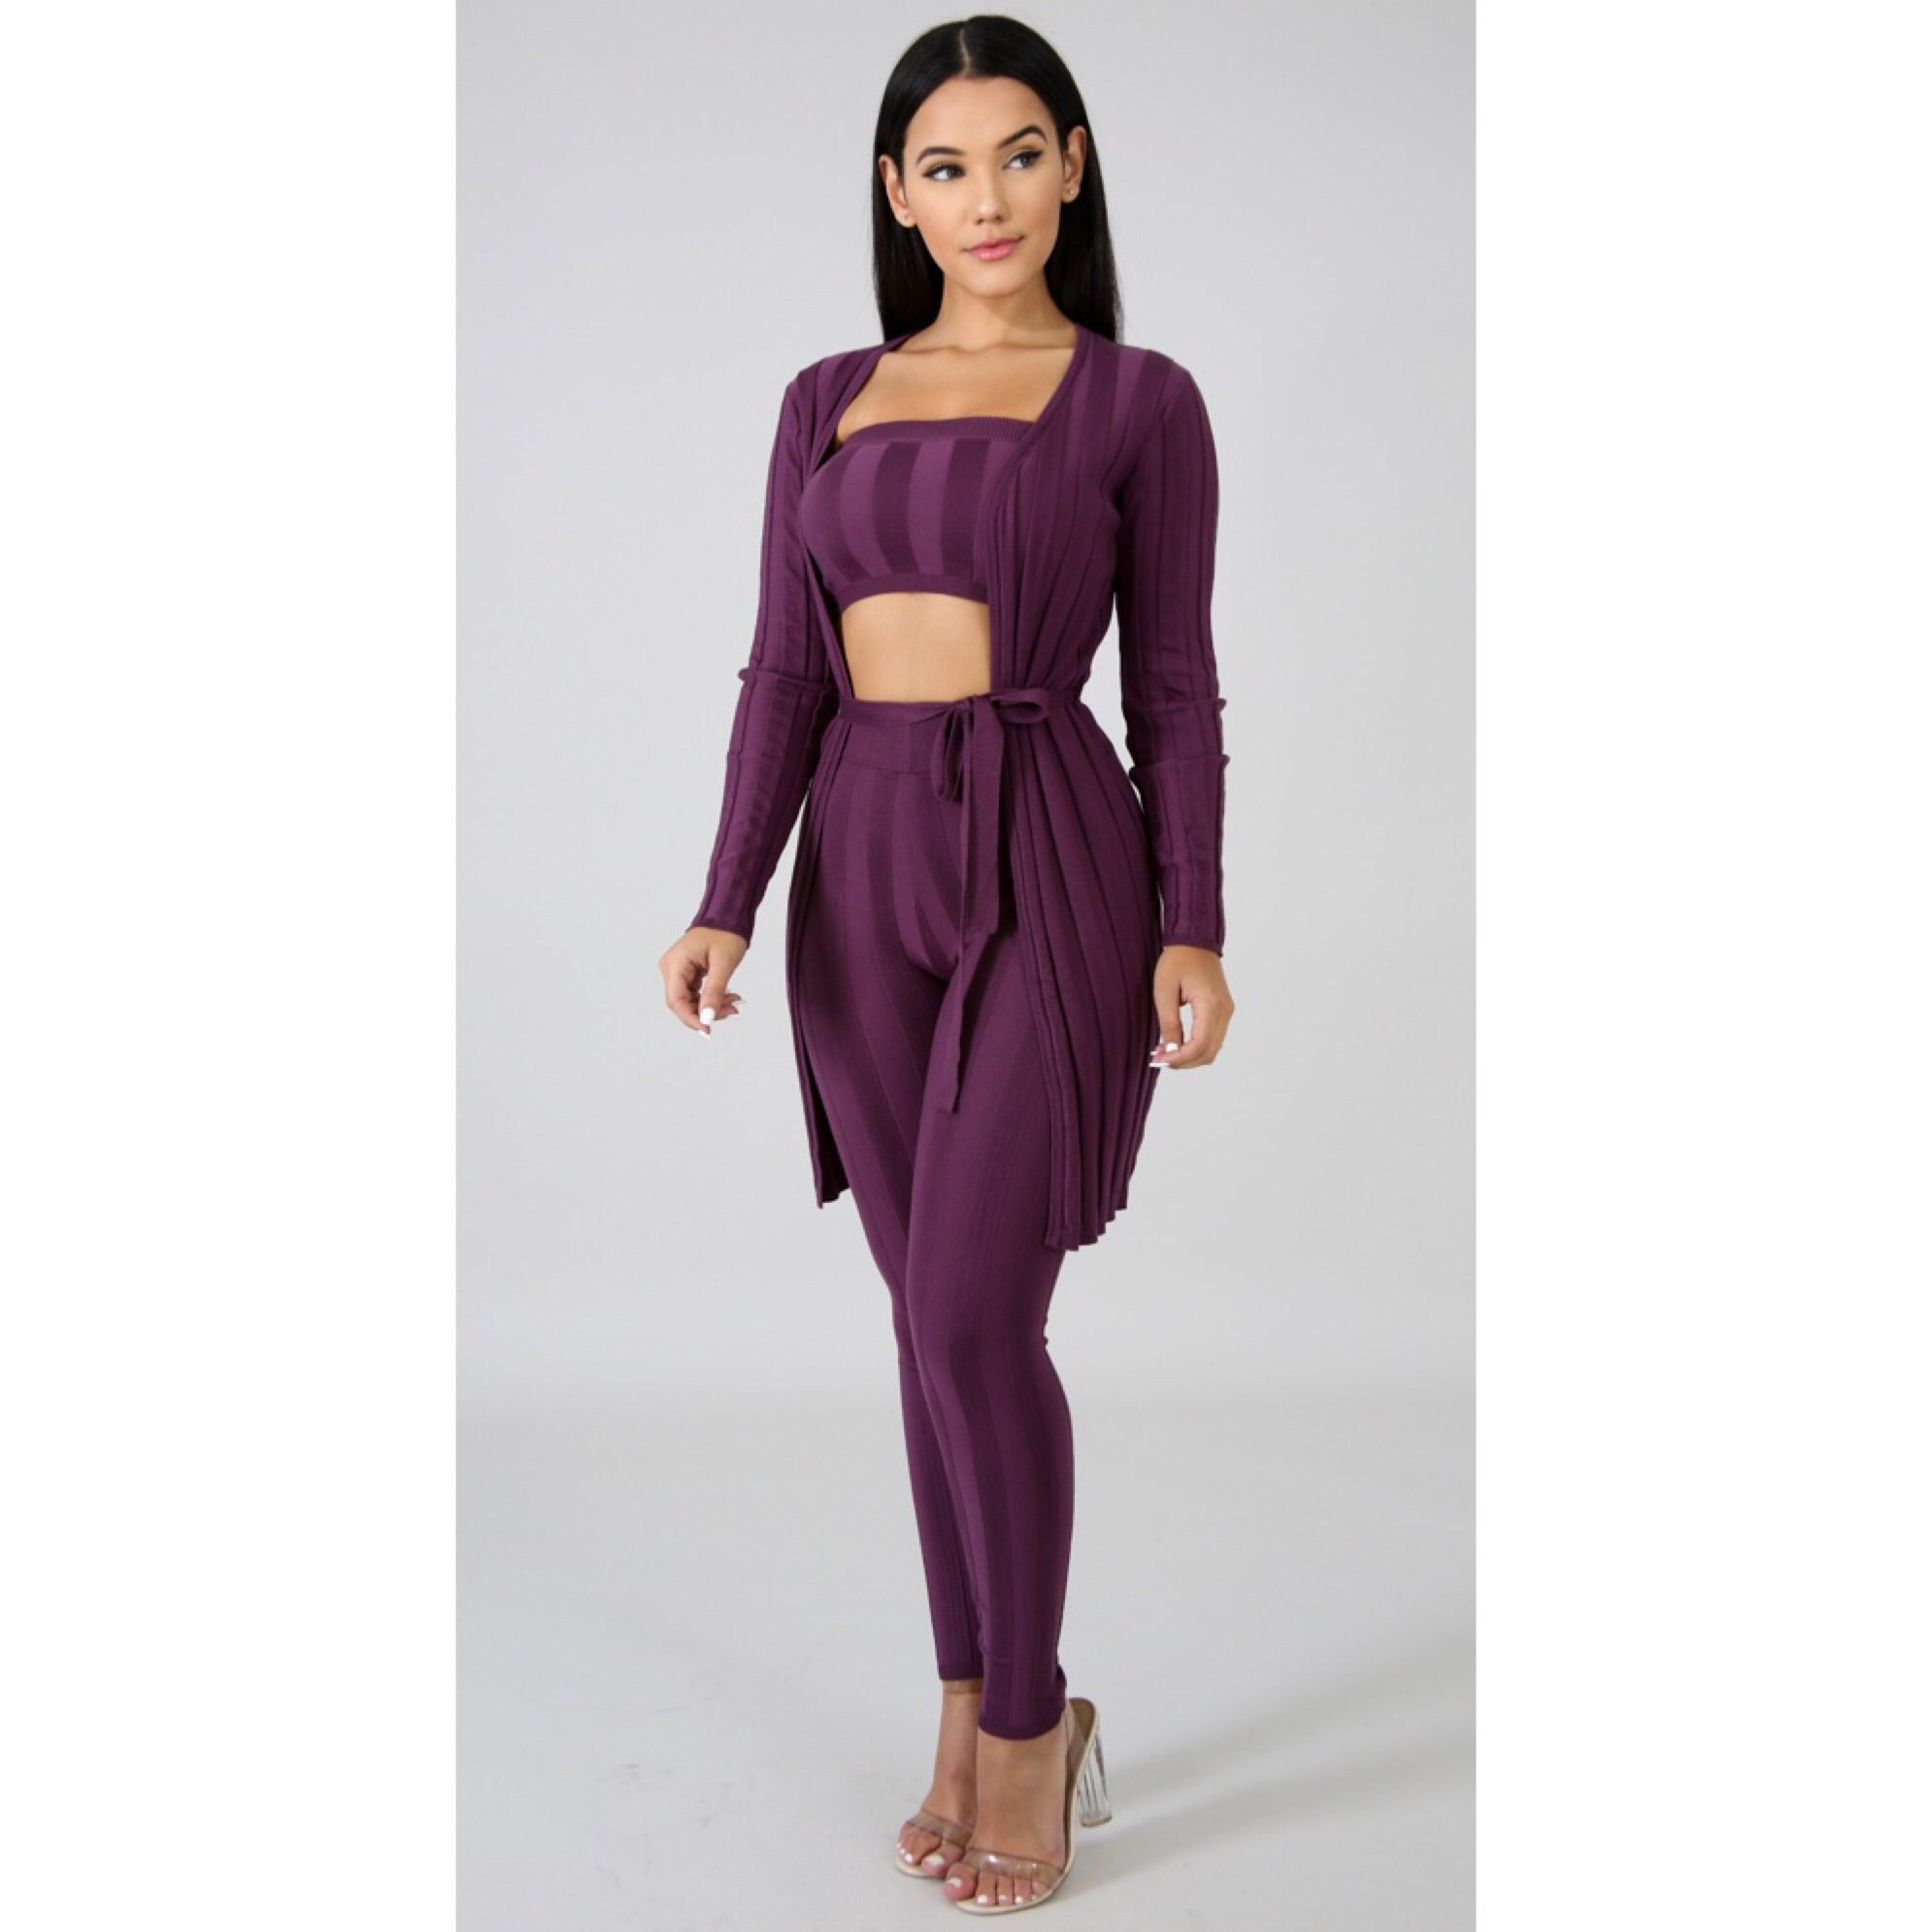 Sherri Three Piece Set